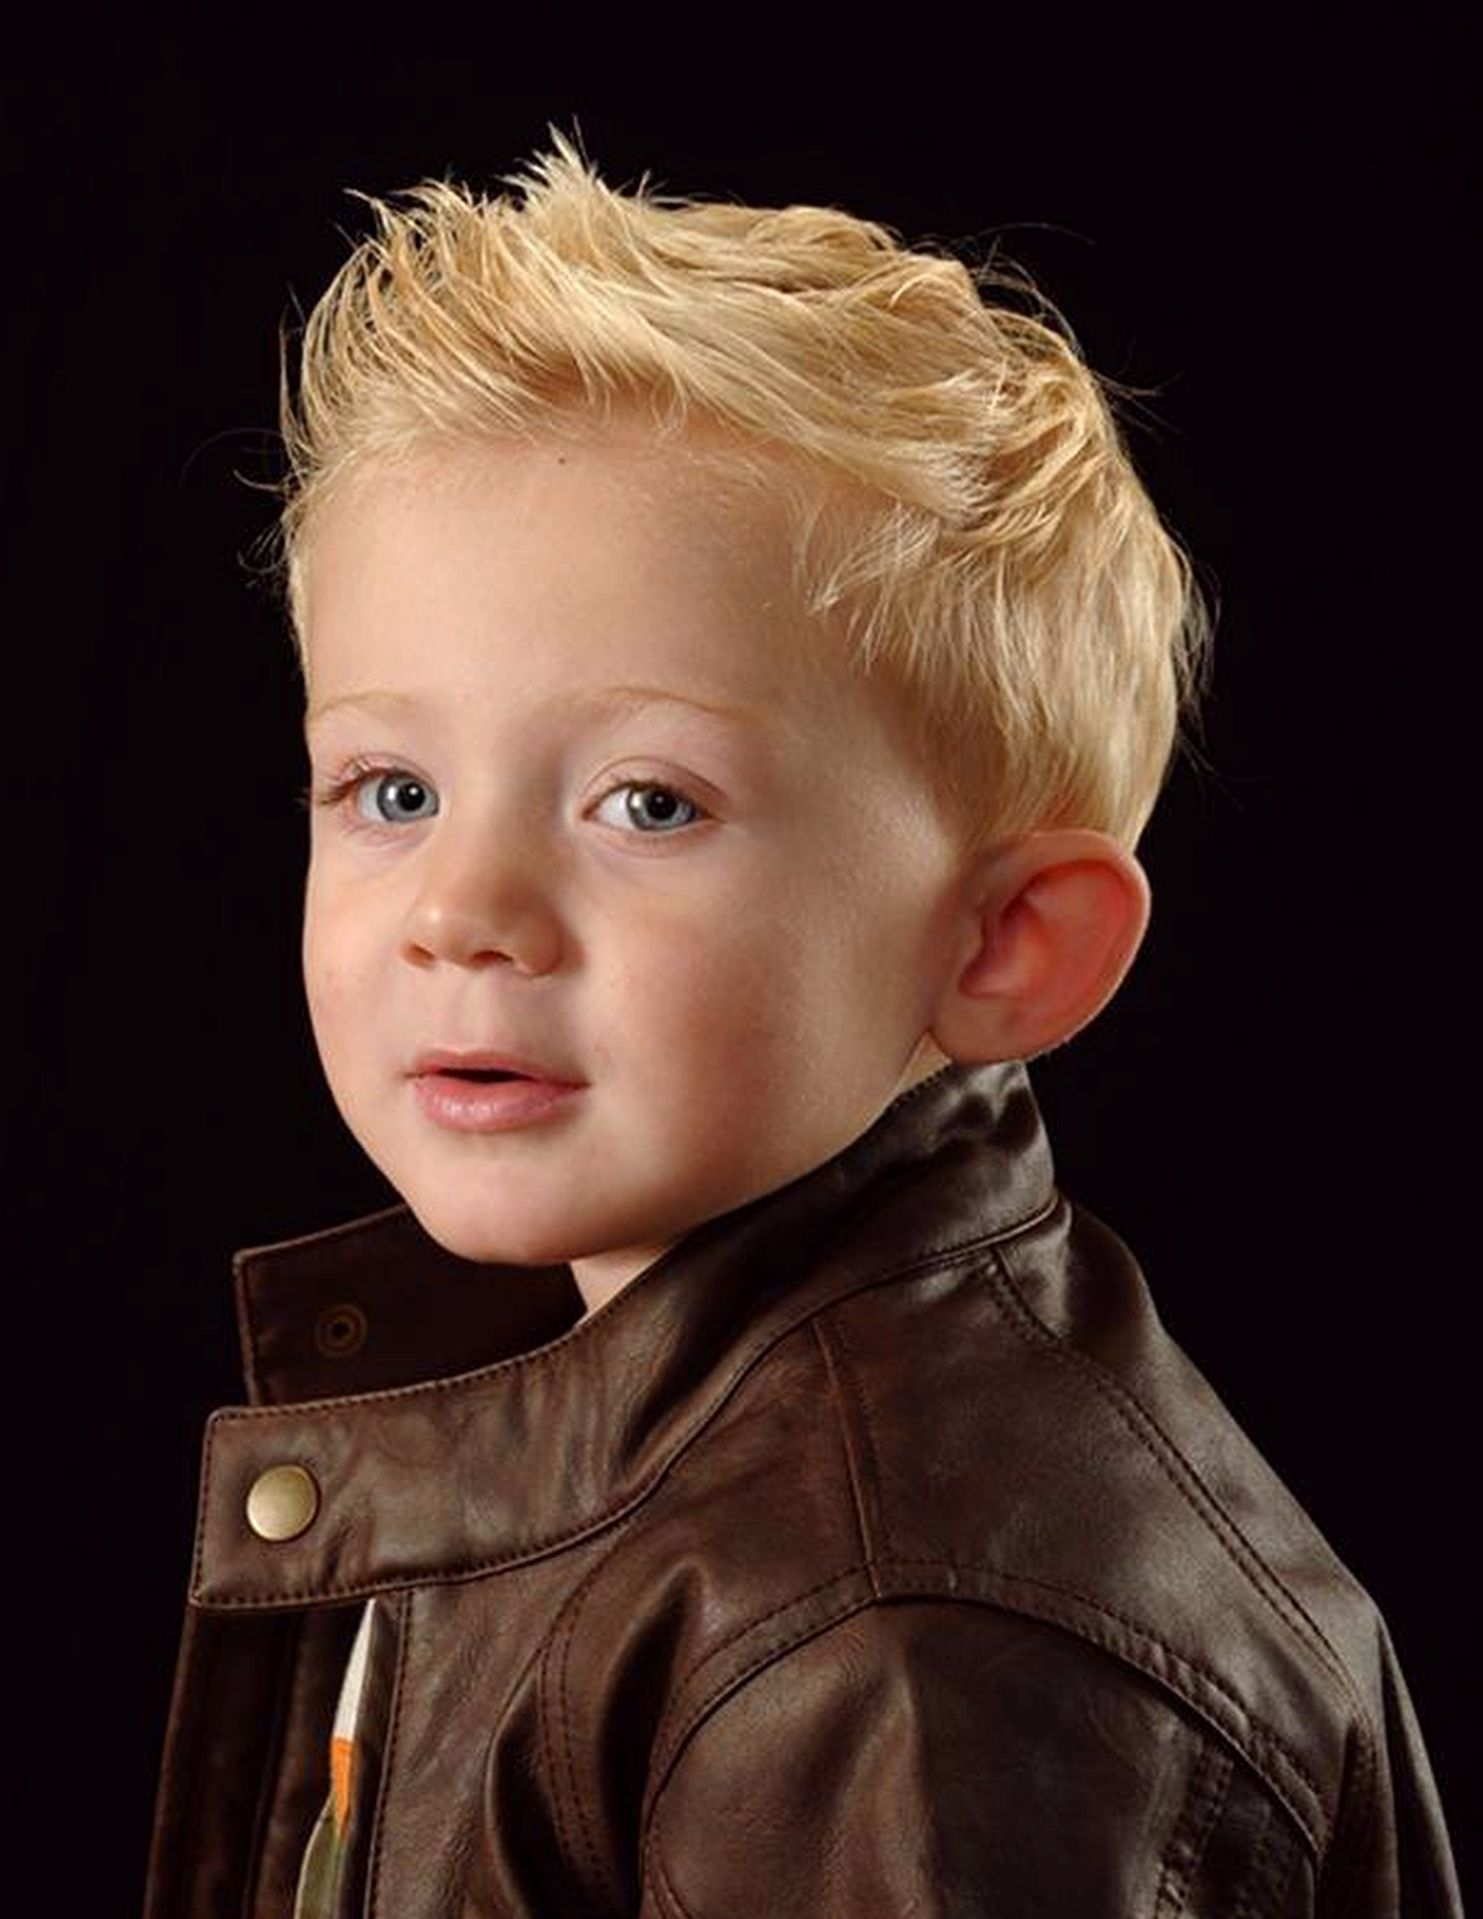 kids hair styles boys best 25 toddler boy hairstyles ideas on 3680 | 7e9a872a72be5d5020594a741106d0c3